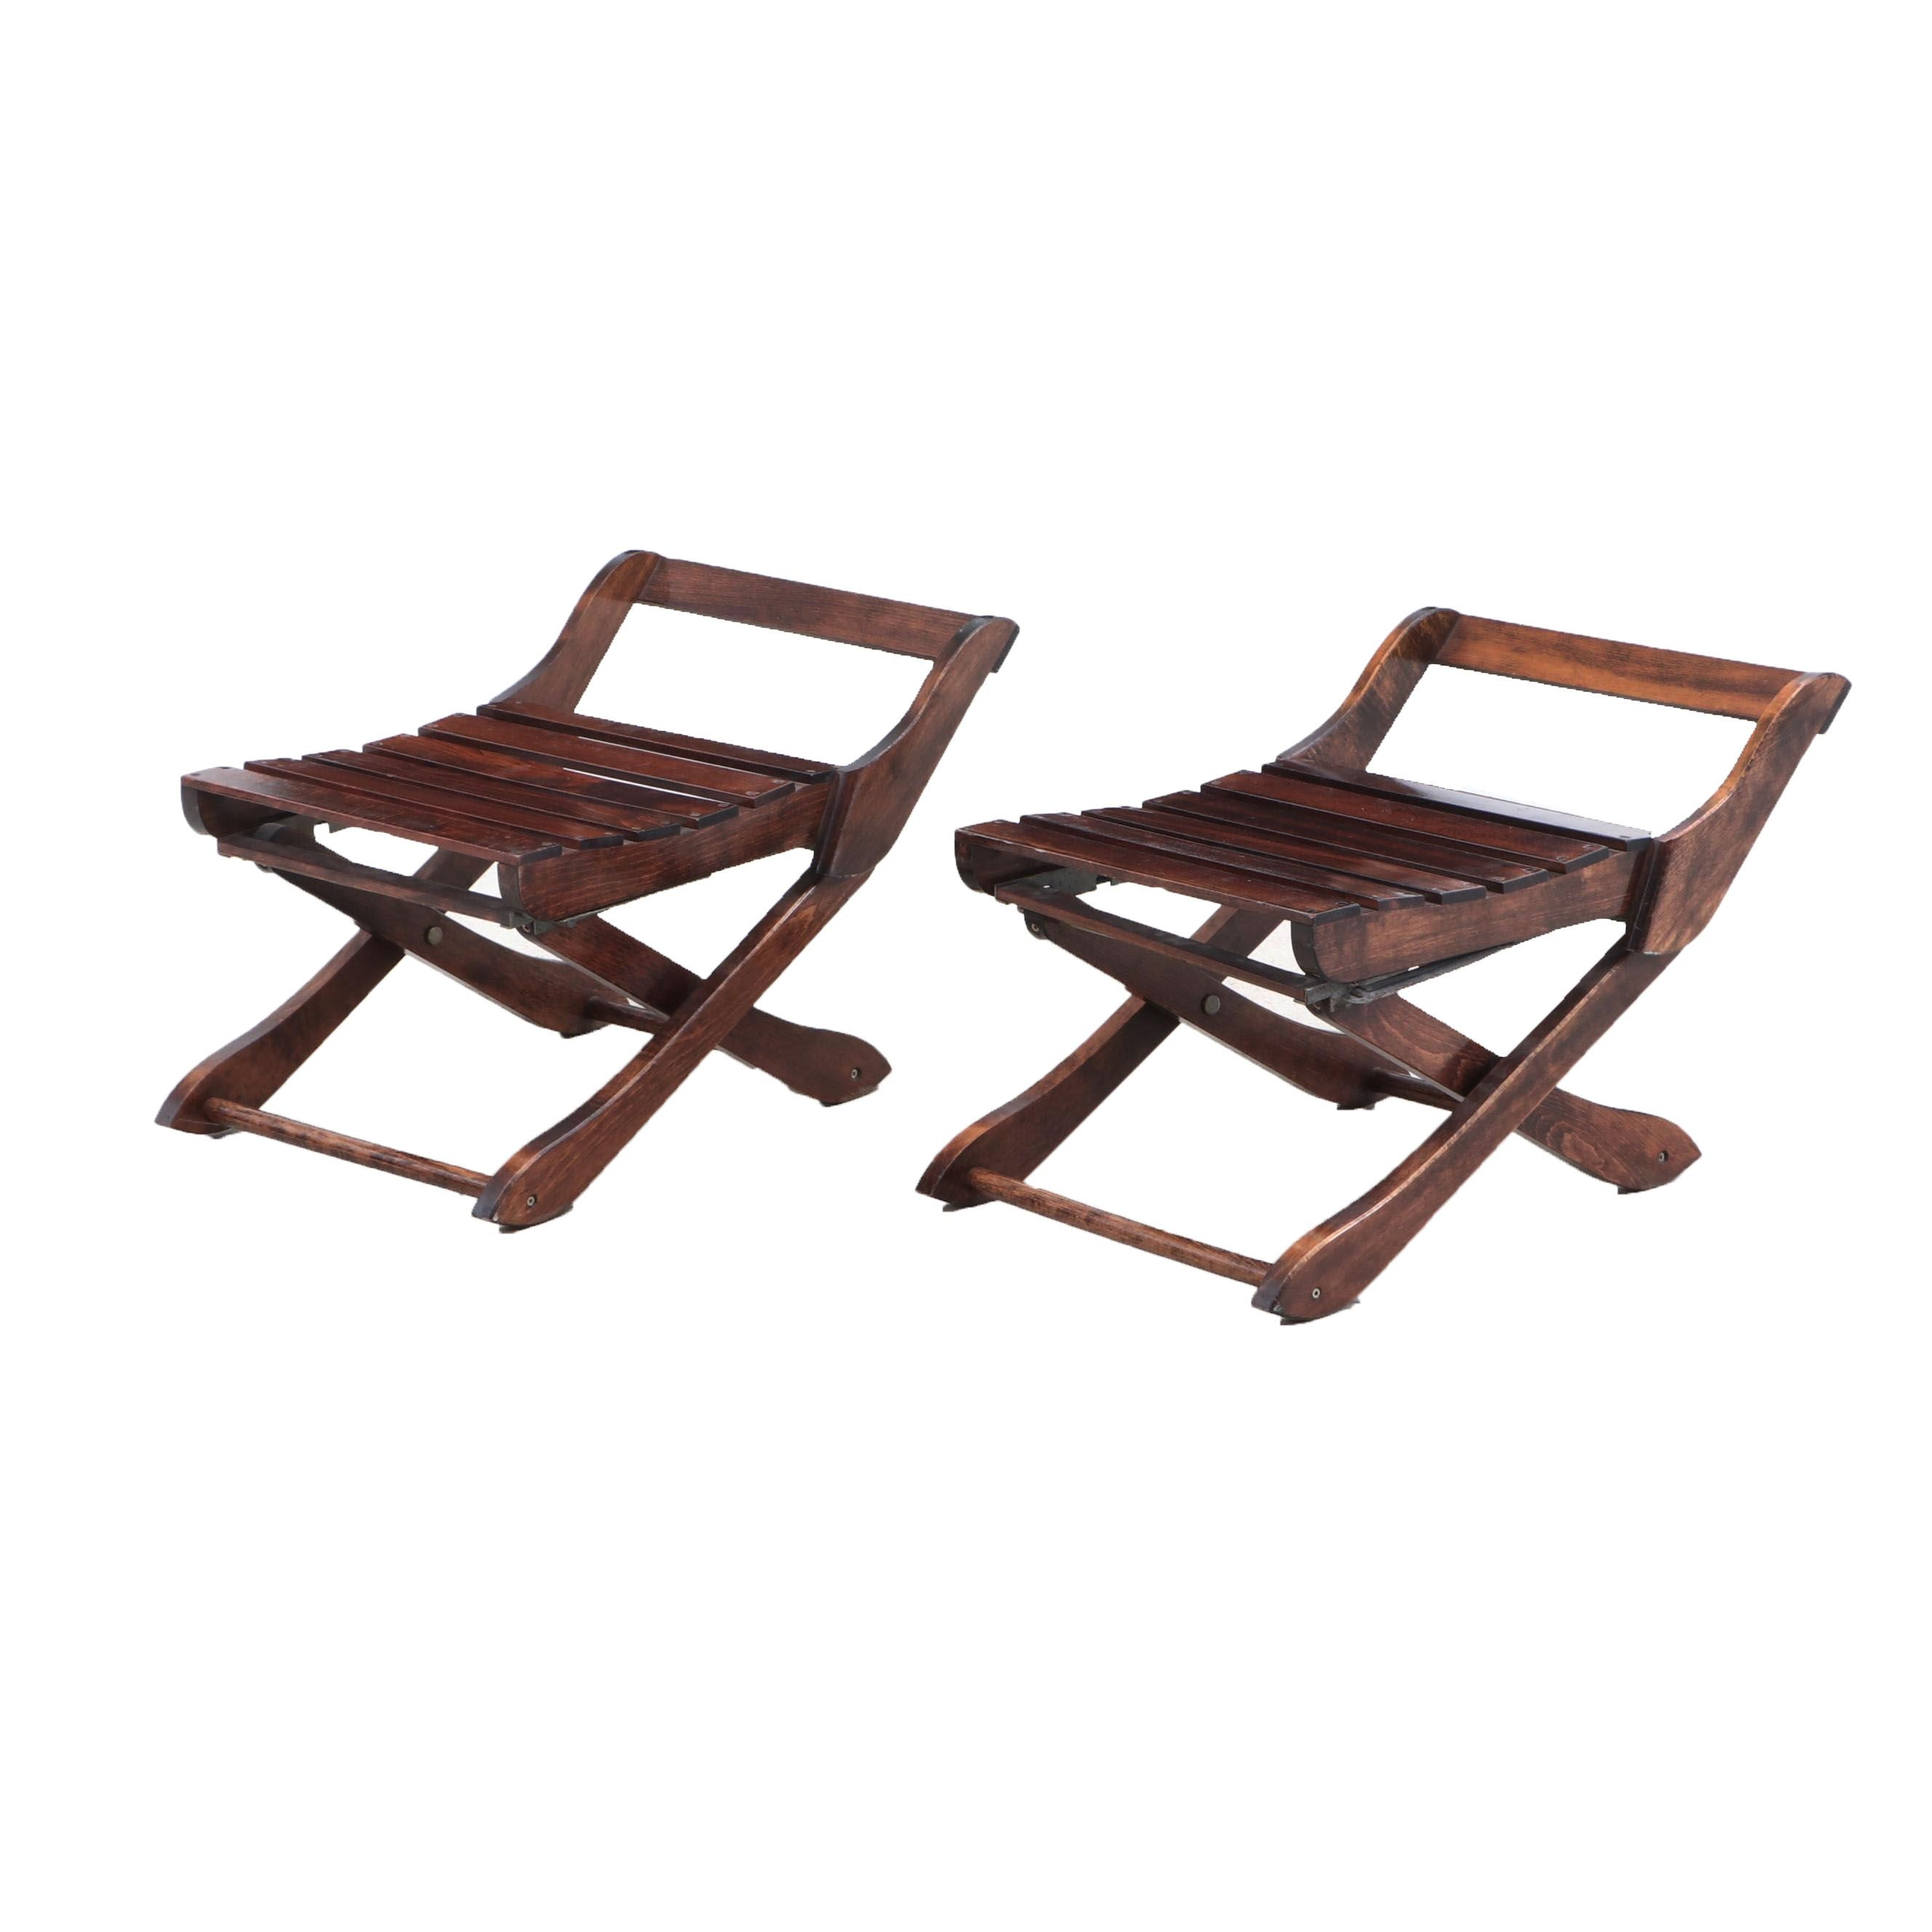 Pair of Birch Slatted Folding Field Chairs